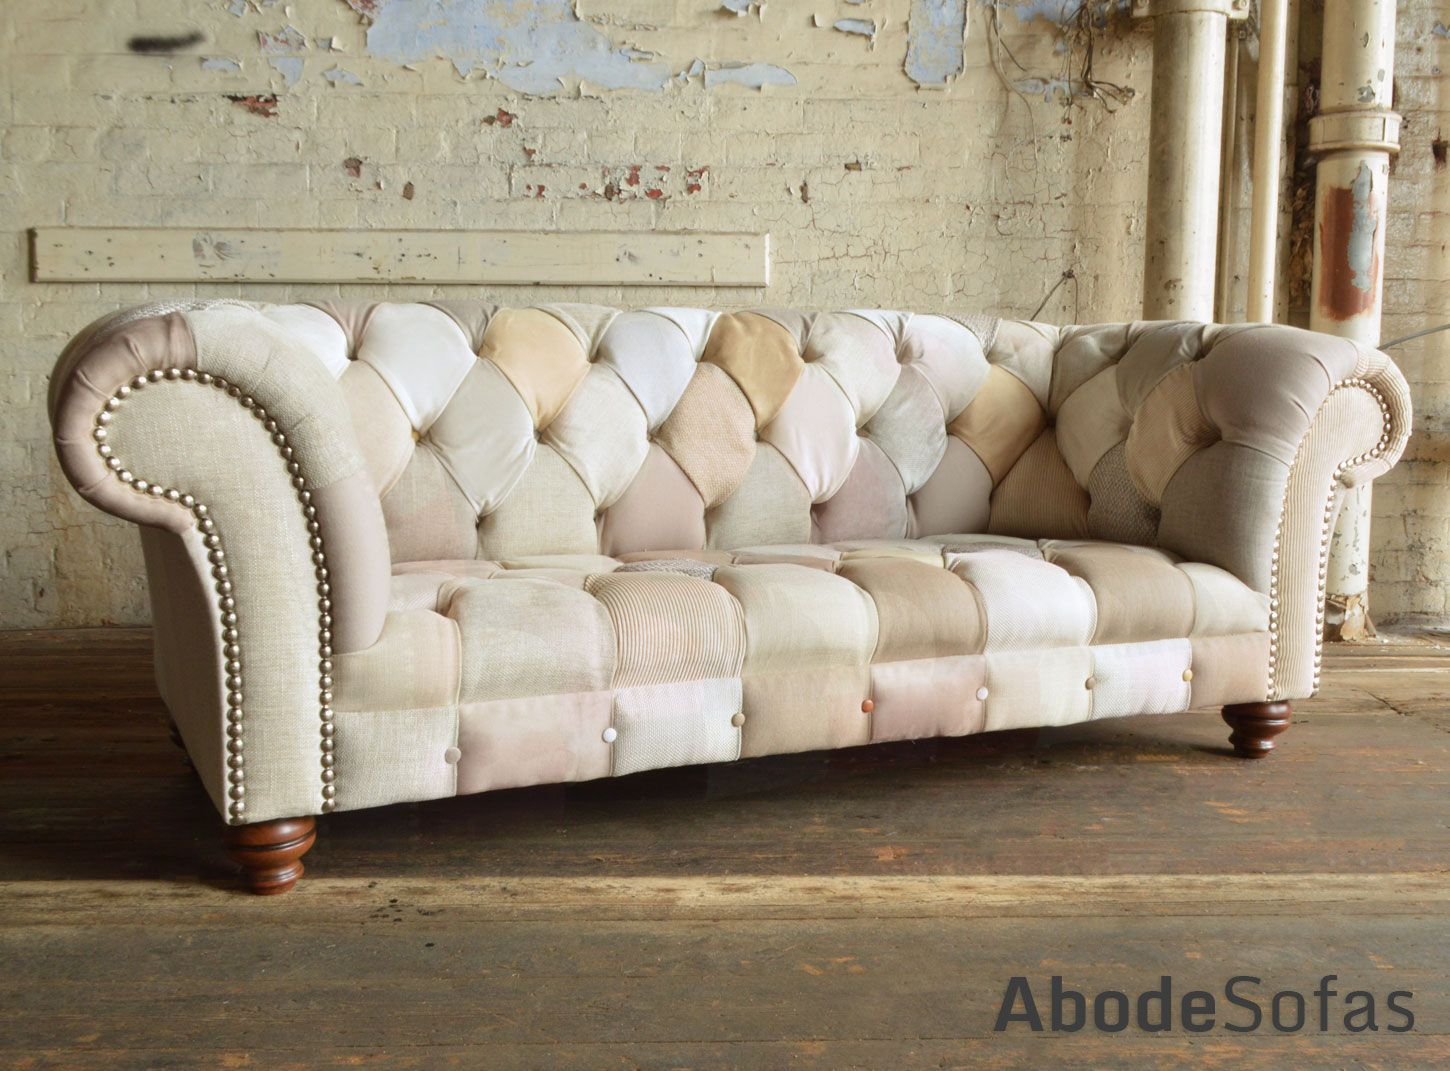 Modern British And Handmade Subtle Cream Patchwork Chesterfield Sofa Totally Unique Fabric 3 Seater Shown In A Range Of Beige Colours